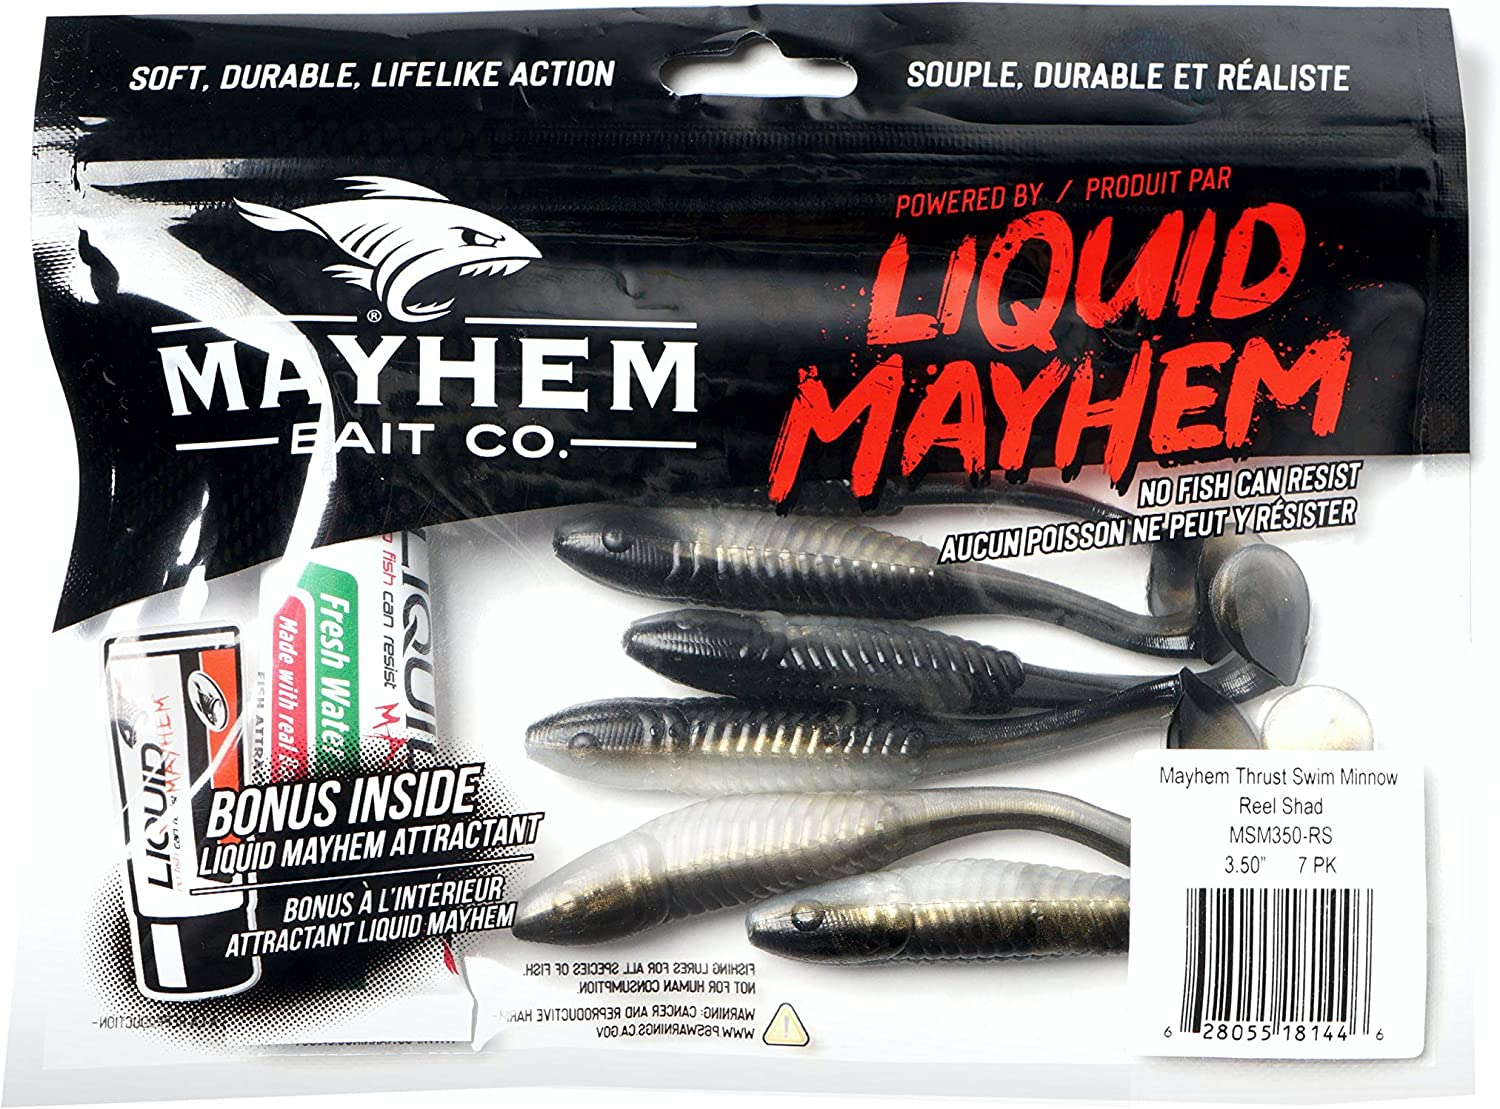 A Great Soft Plastic Fishing Lure for bass and a Multitude of Other Fish Species. Mayhem Thrust Swim Minnow Freshwater Fishing Lure 3 Pack